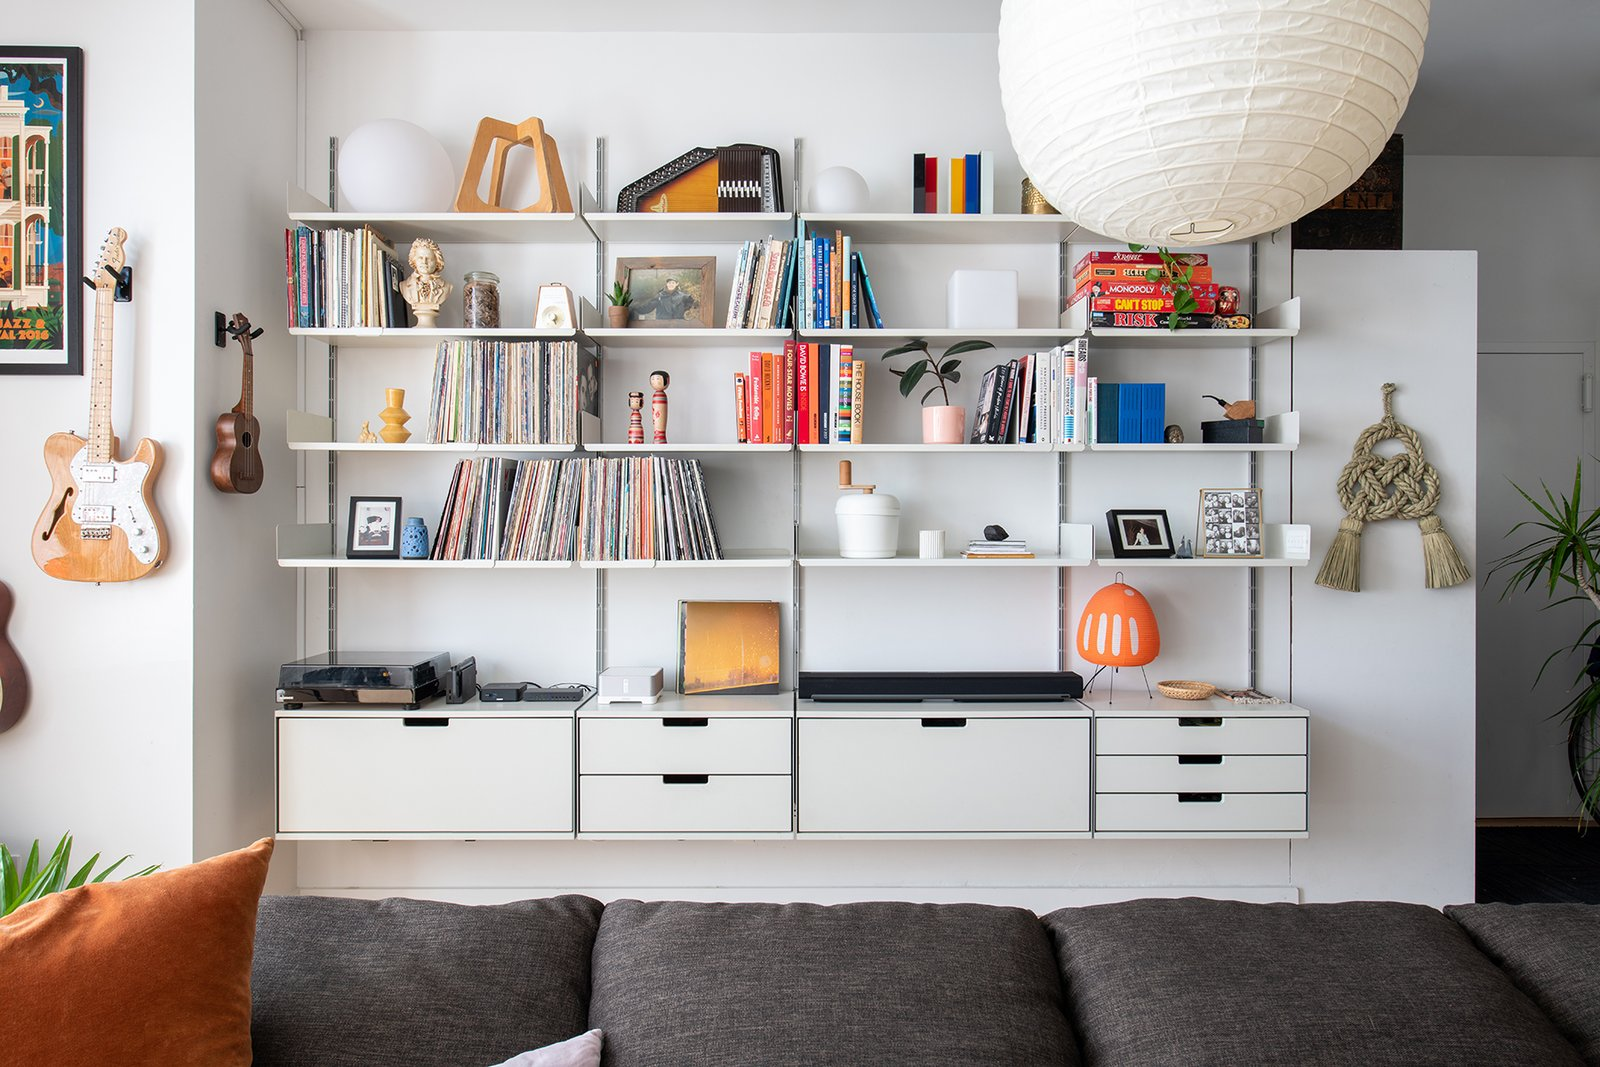 Brooklyn Loft living room storage